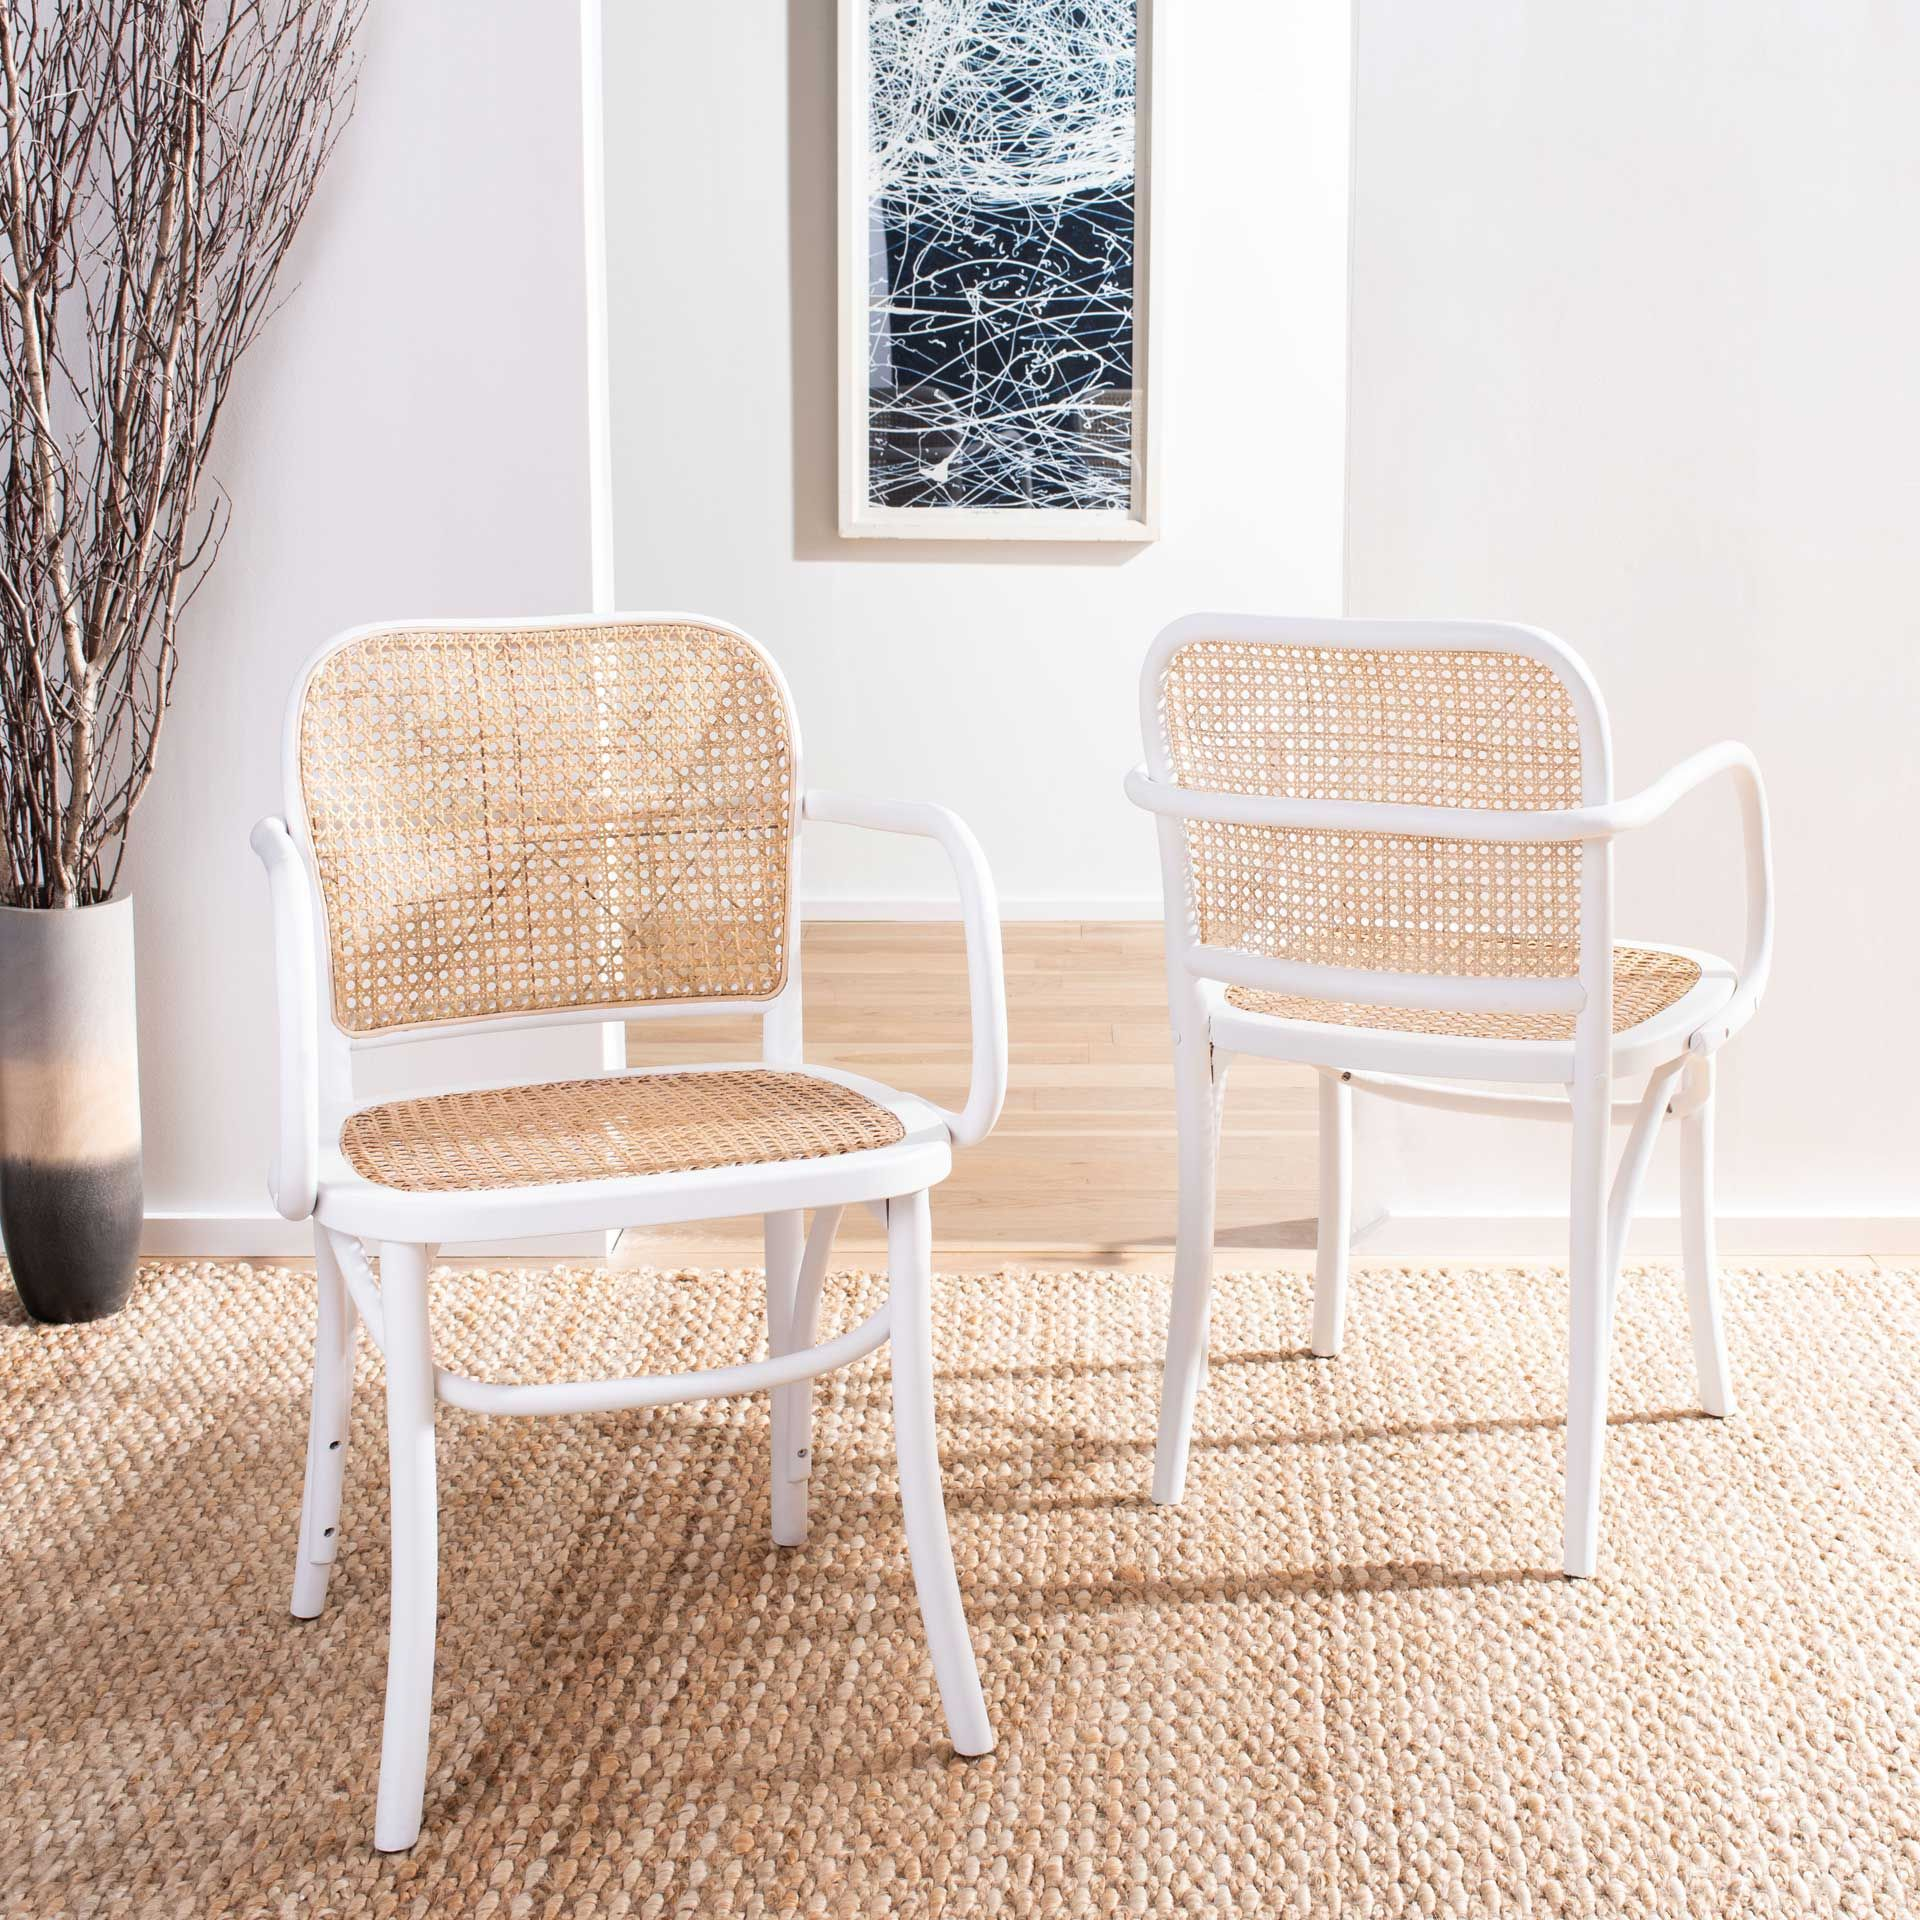 Keanu Cane Dining Chair White Natural Dining Chairs Cane Dining Chair Cane Dining Chairs White and natural kitchen chairs